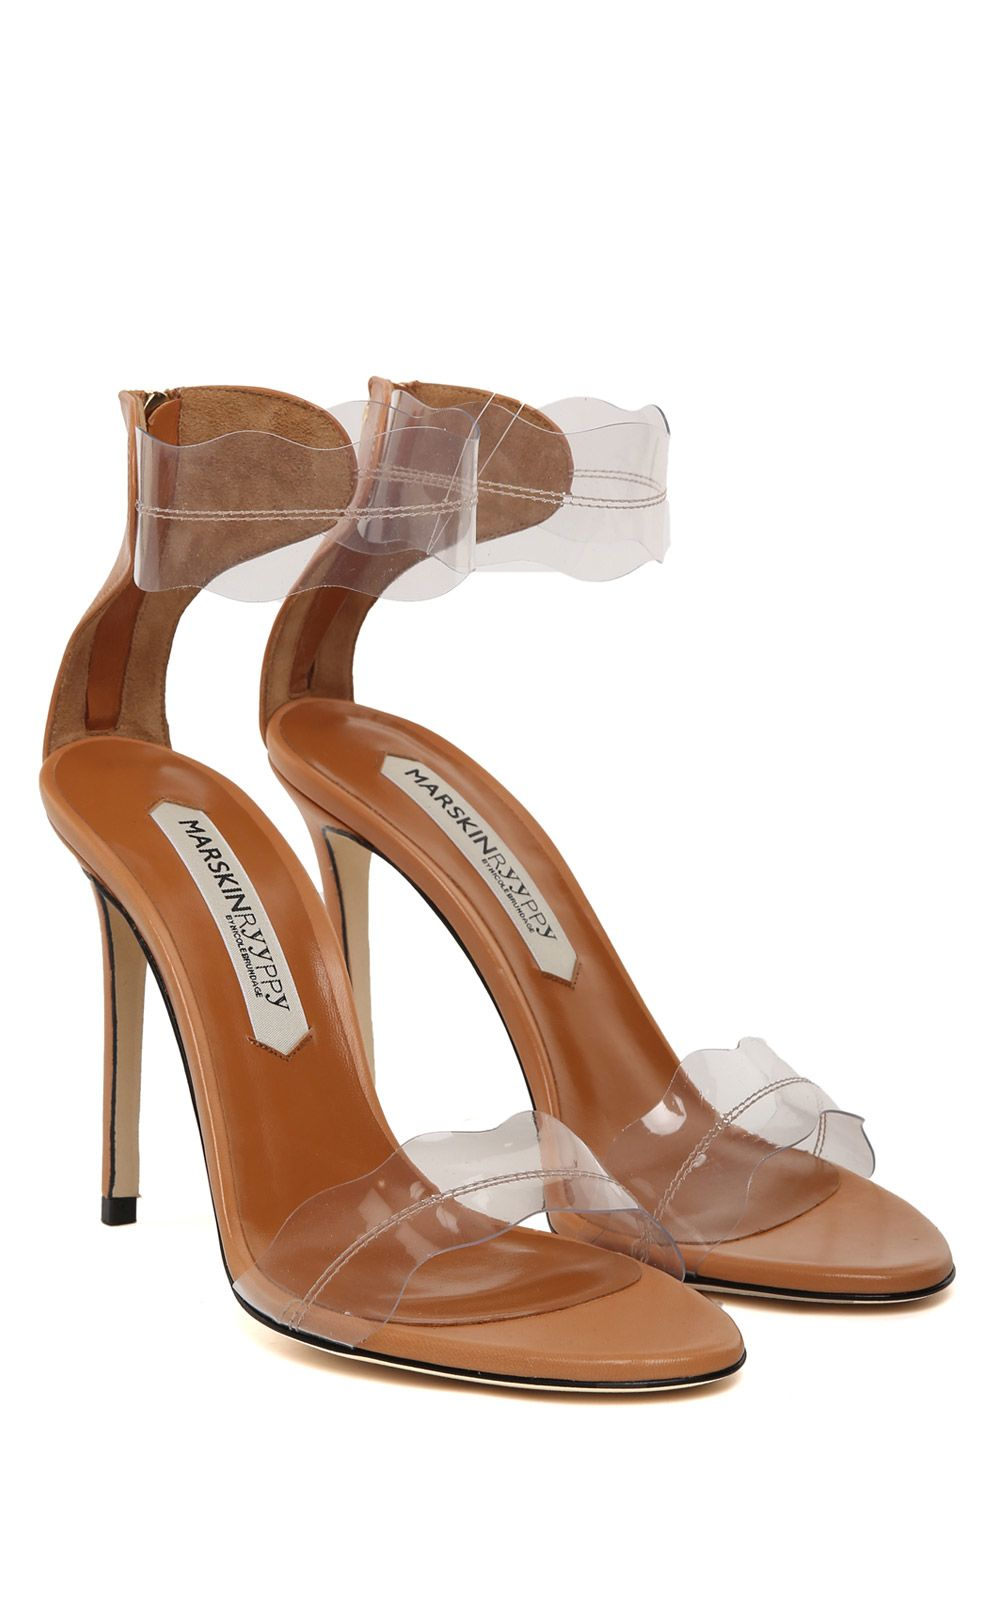 Pauwau patent-leather and PVC sandals Marskinryyppy at2zMLjD